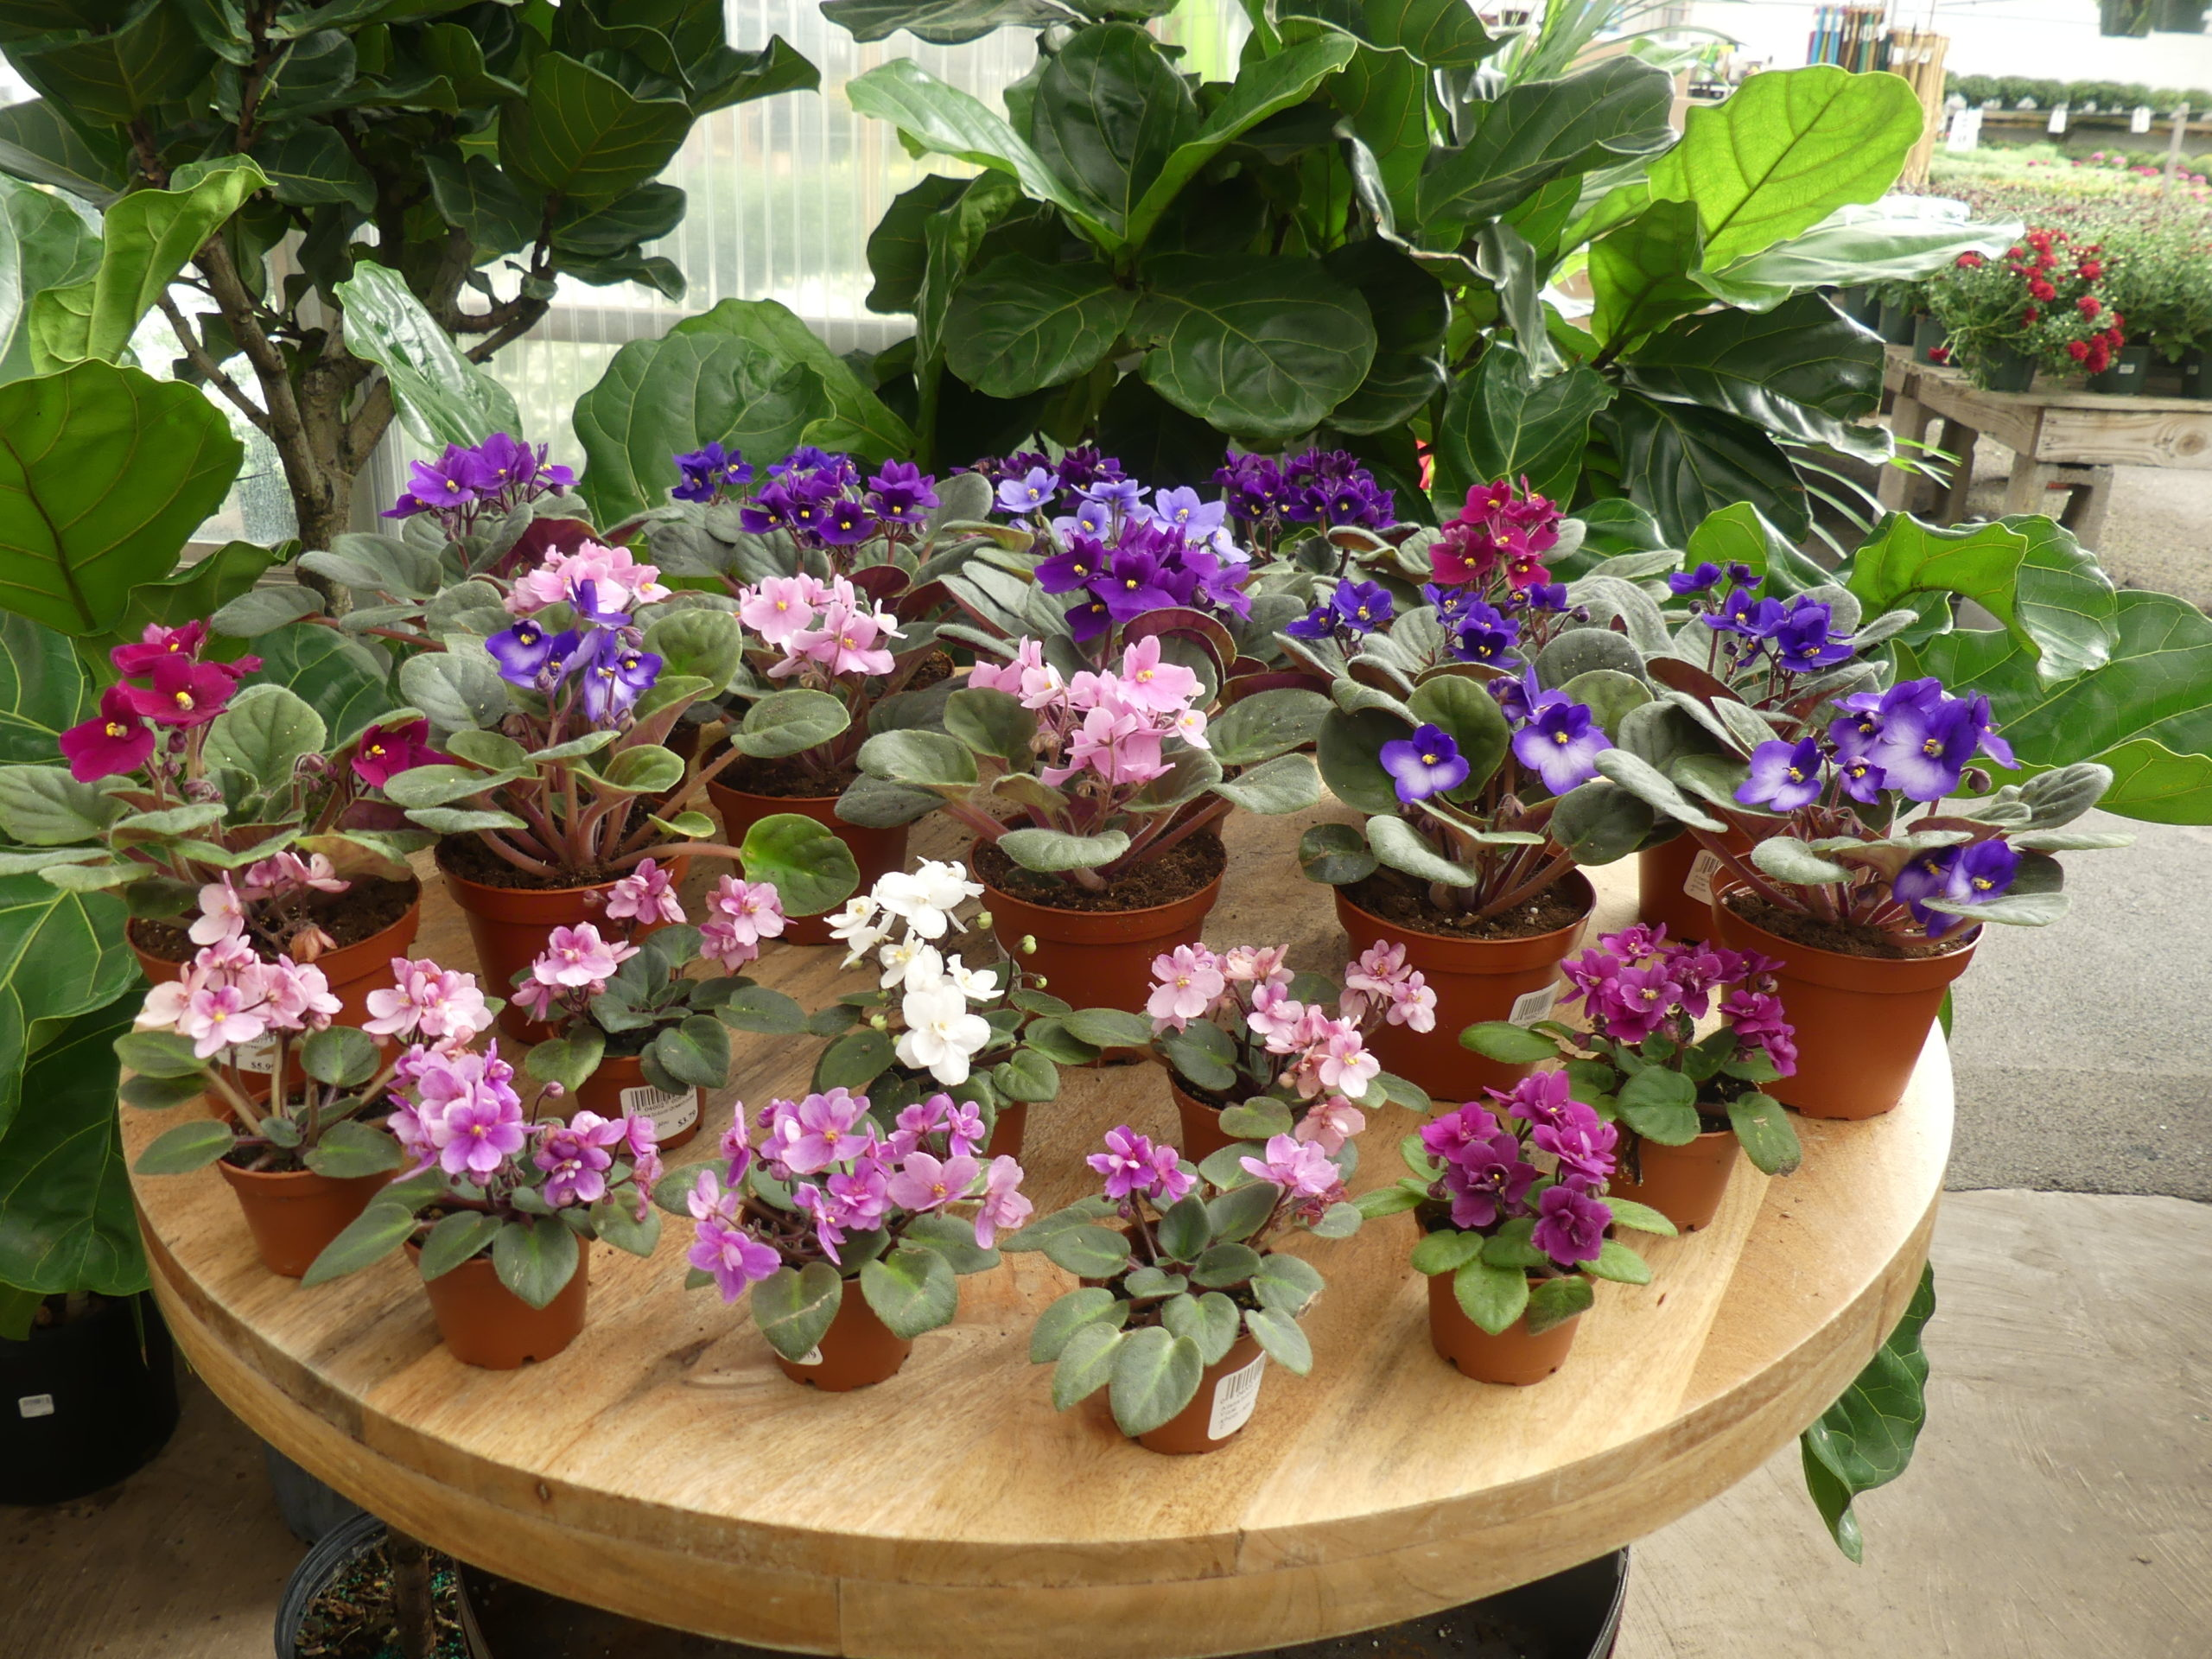 African violets may be somewhat common but they're reliable and can flower for months on end. Never get the leaves wet, and better to give African violets too little water than too much. You can always add more if needed.  ANDREW MESSINGER